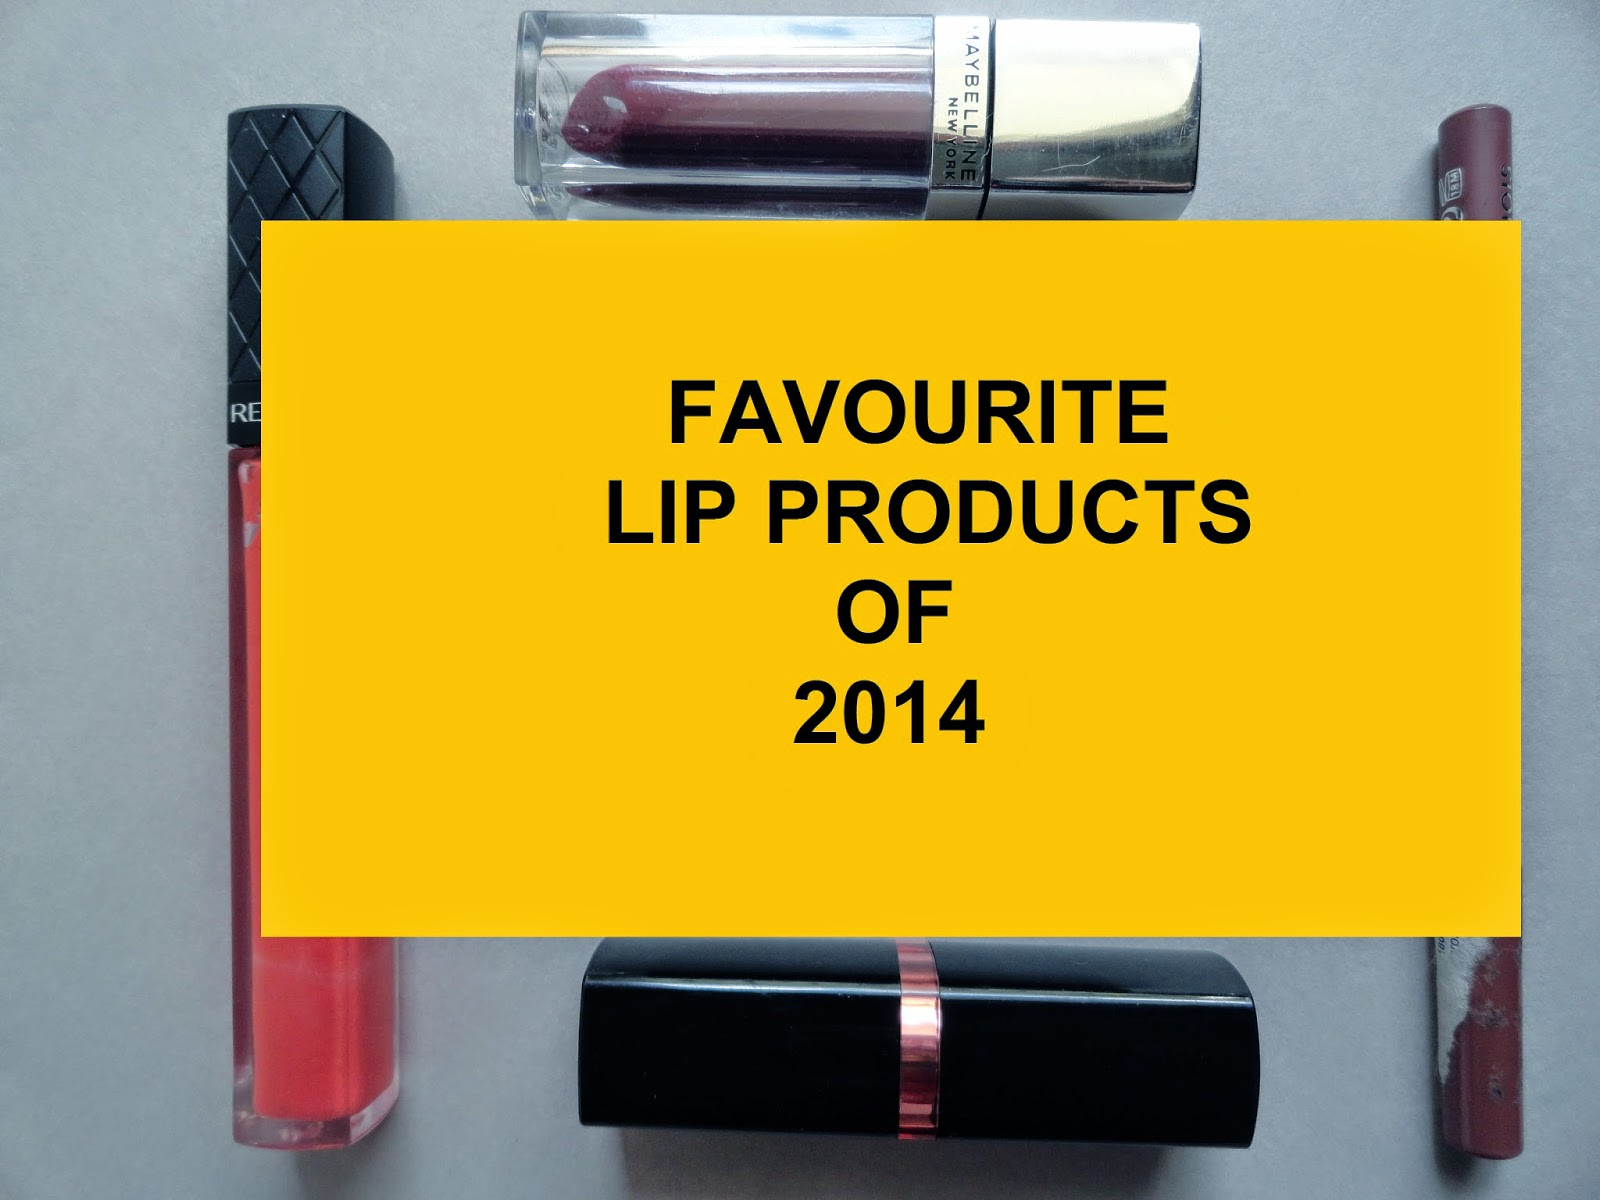 My favourite lip products in 2014 + Inventory image